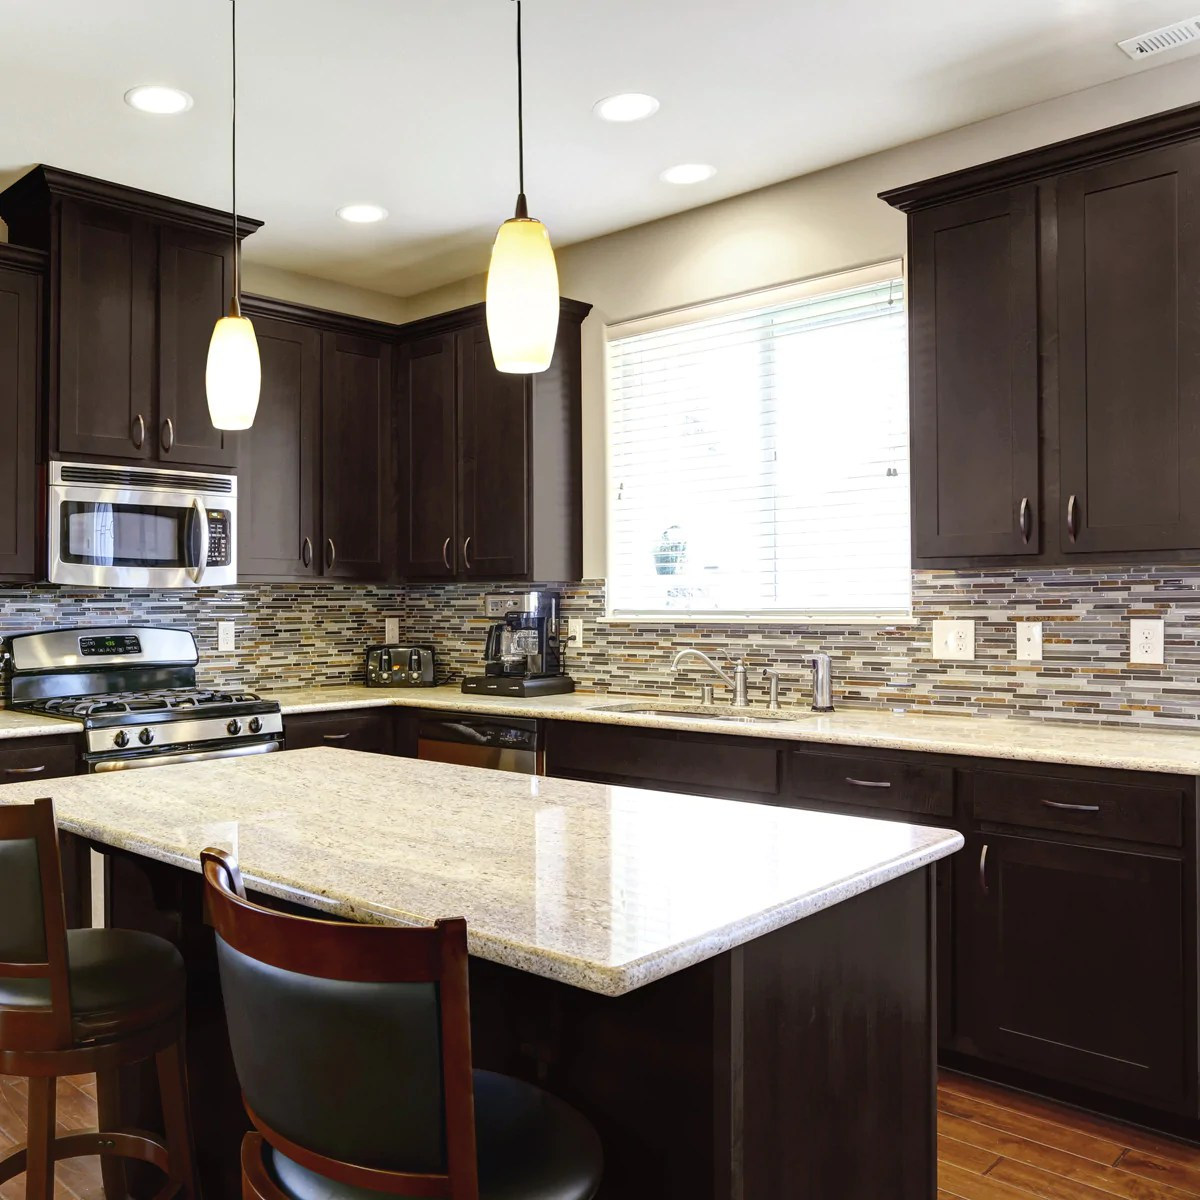 Best Kitchen Gallery: Nuvo Cocoa Couture Cabi Paint Kit Giani Inc of Cocoa Kitchen Cabinets on rachelxblog.com